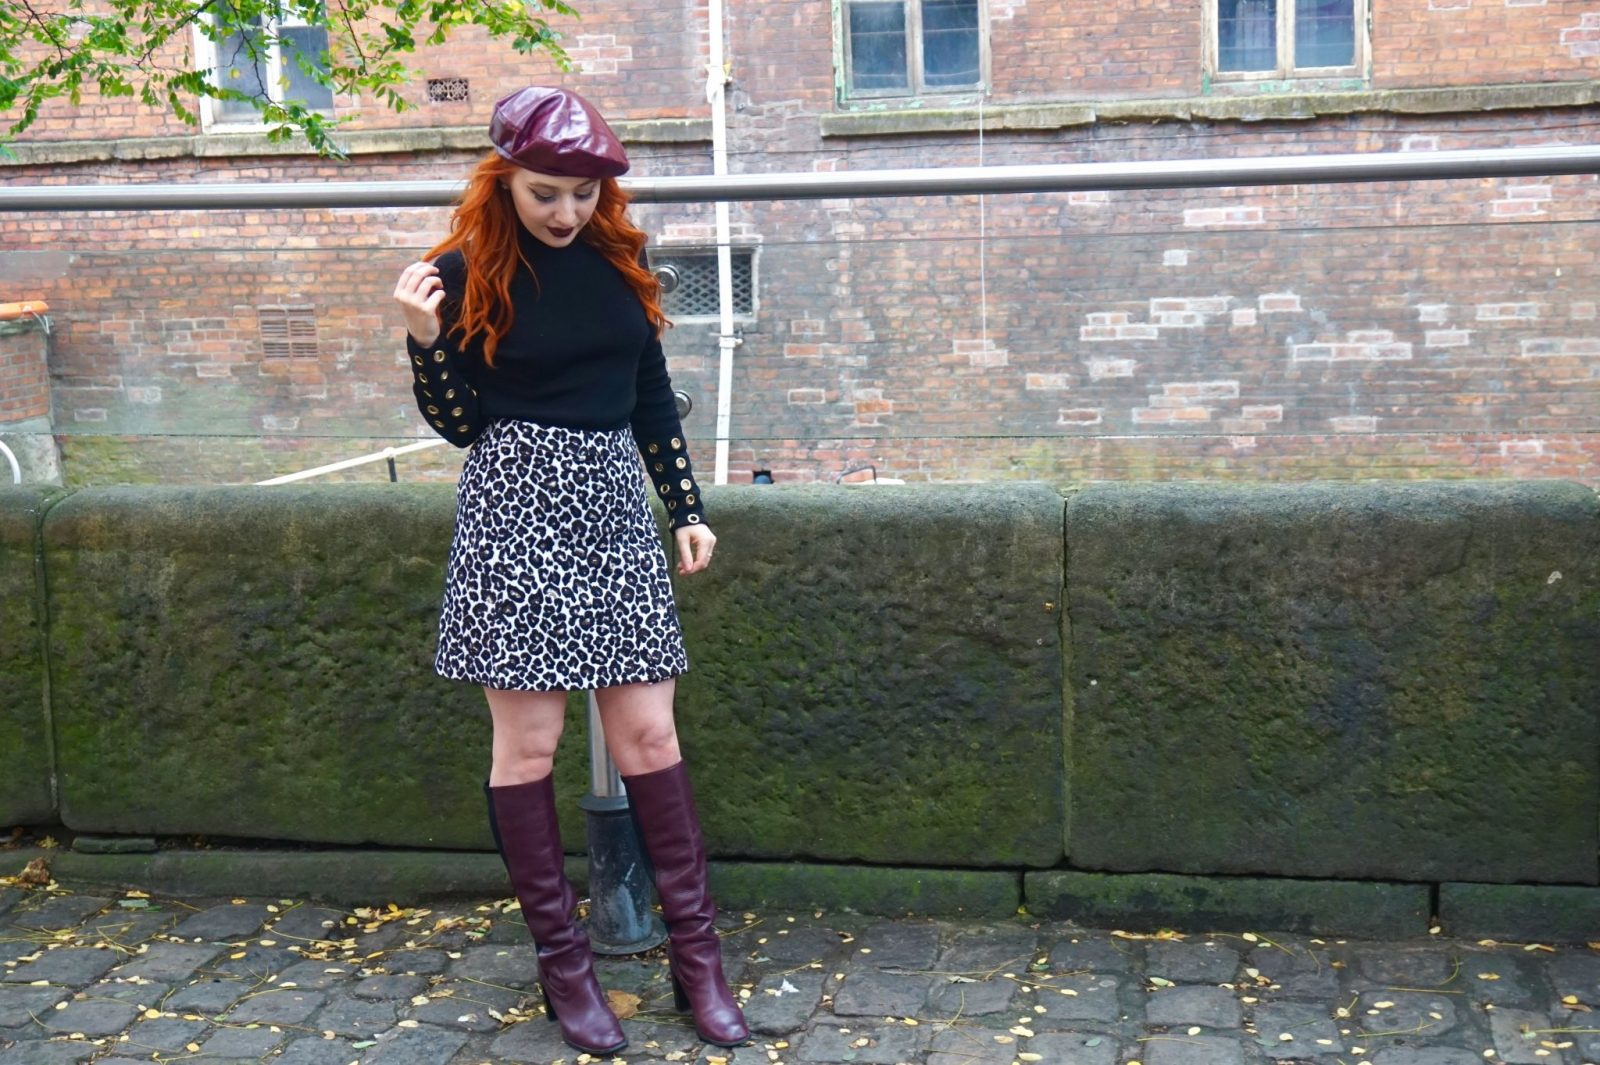 Blogger Twenty-Something City shares where to take good Instagram outfit photos in The Village, Manchester